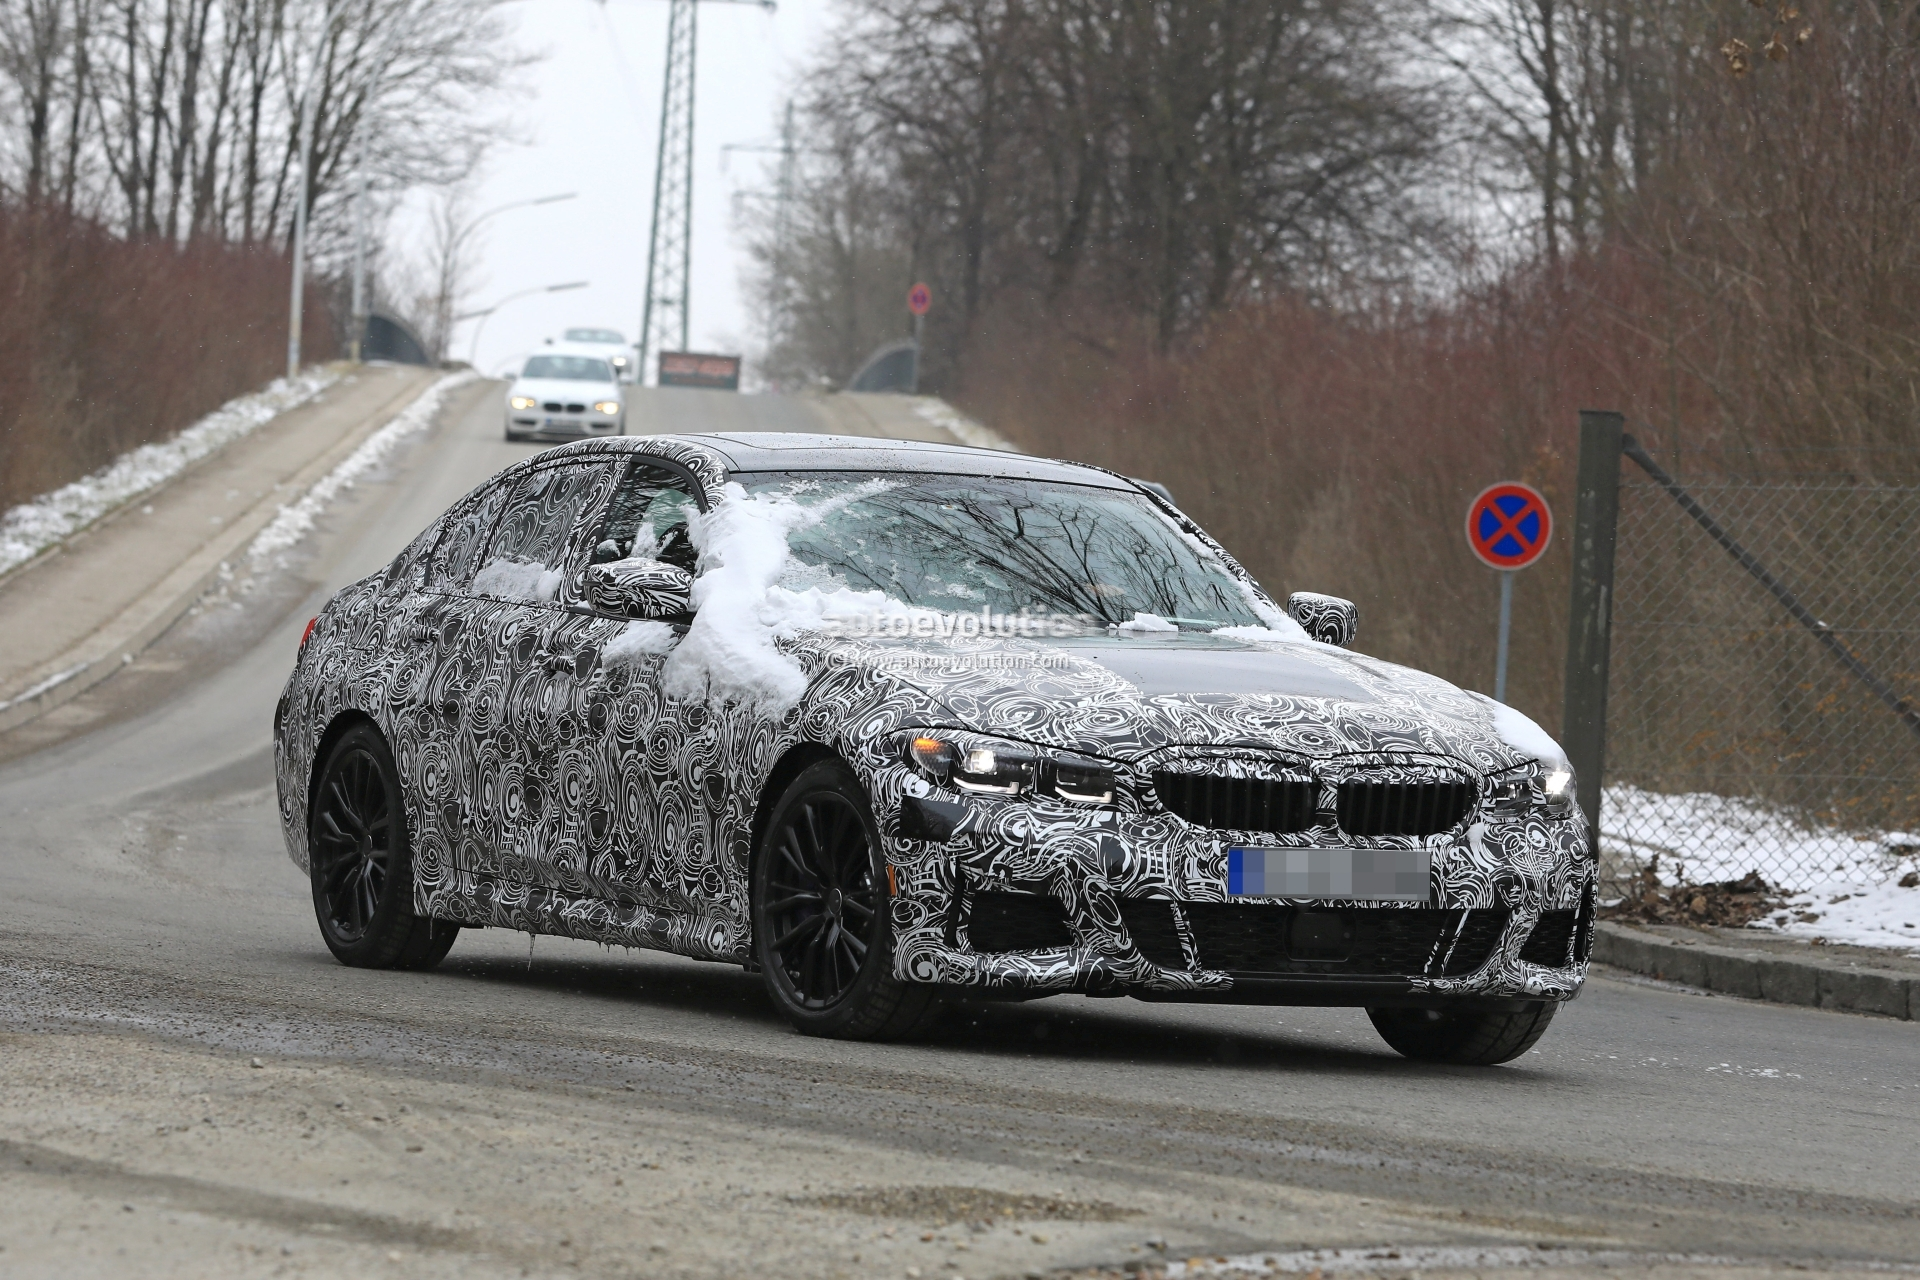 53 All New Spy Shots BMW 3 Series First Drive